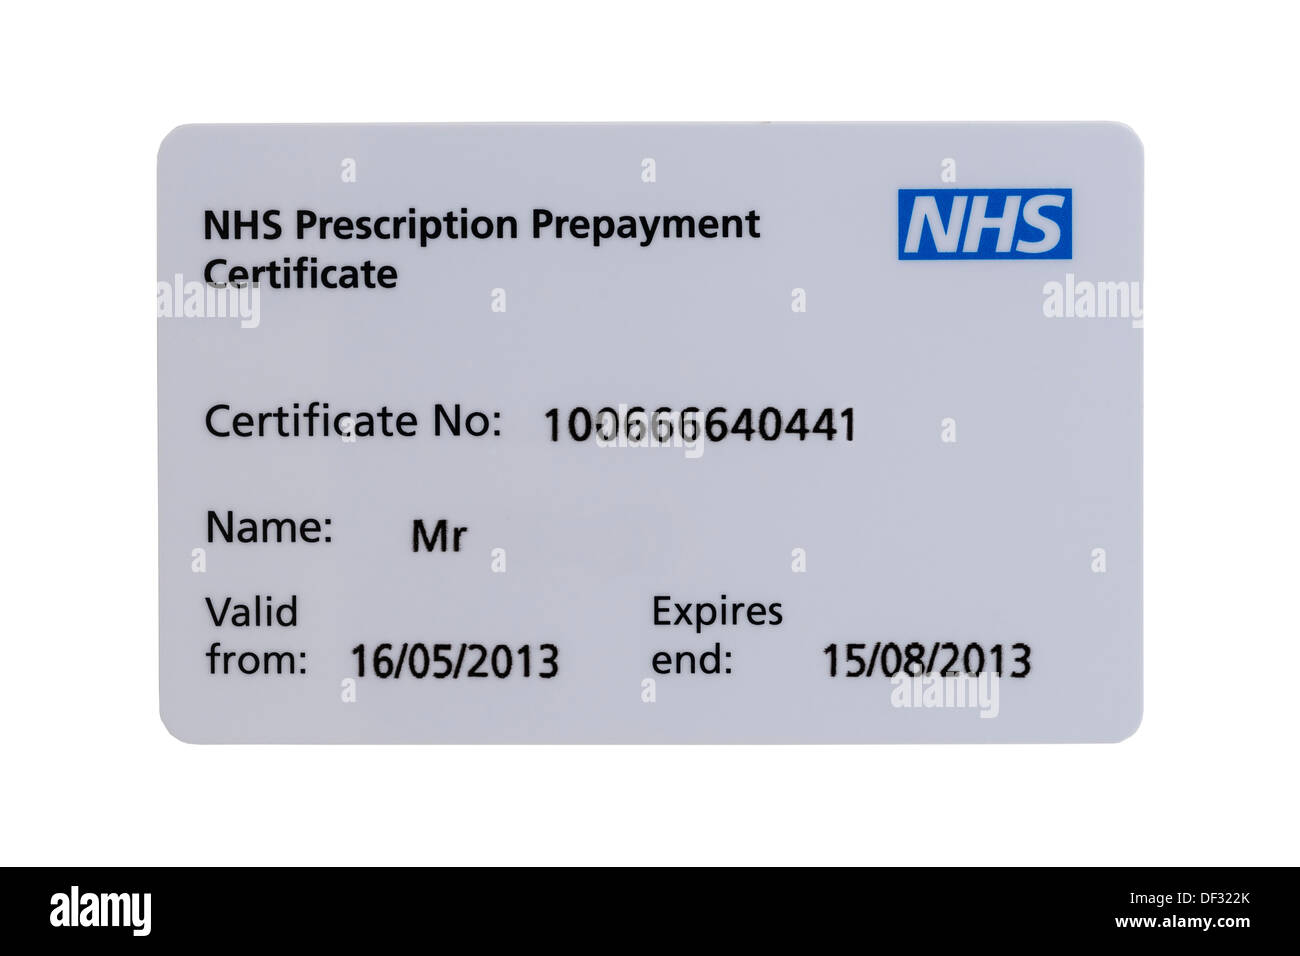 Une prescription NHS carte Certificat de remboursement anticipé sur un fond blanc Photo Stock